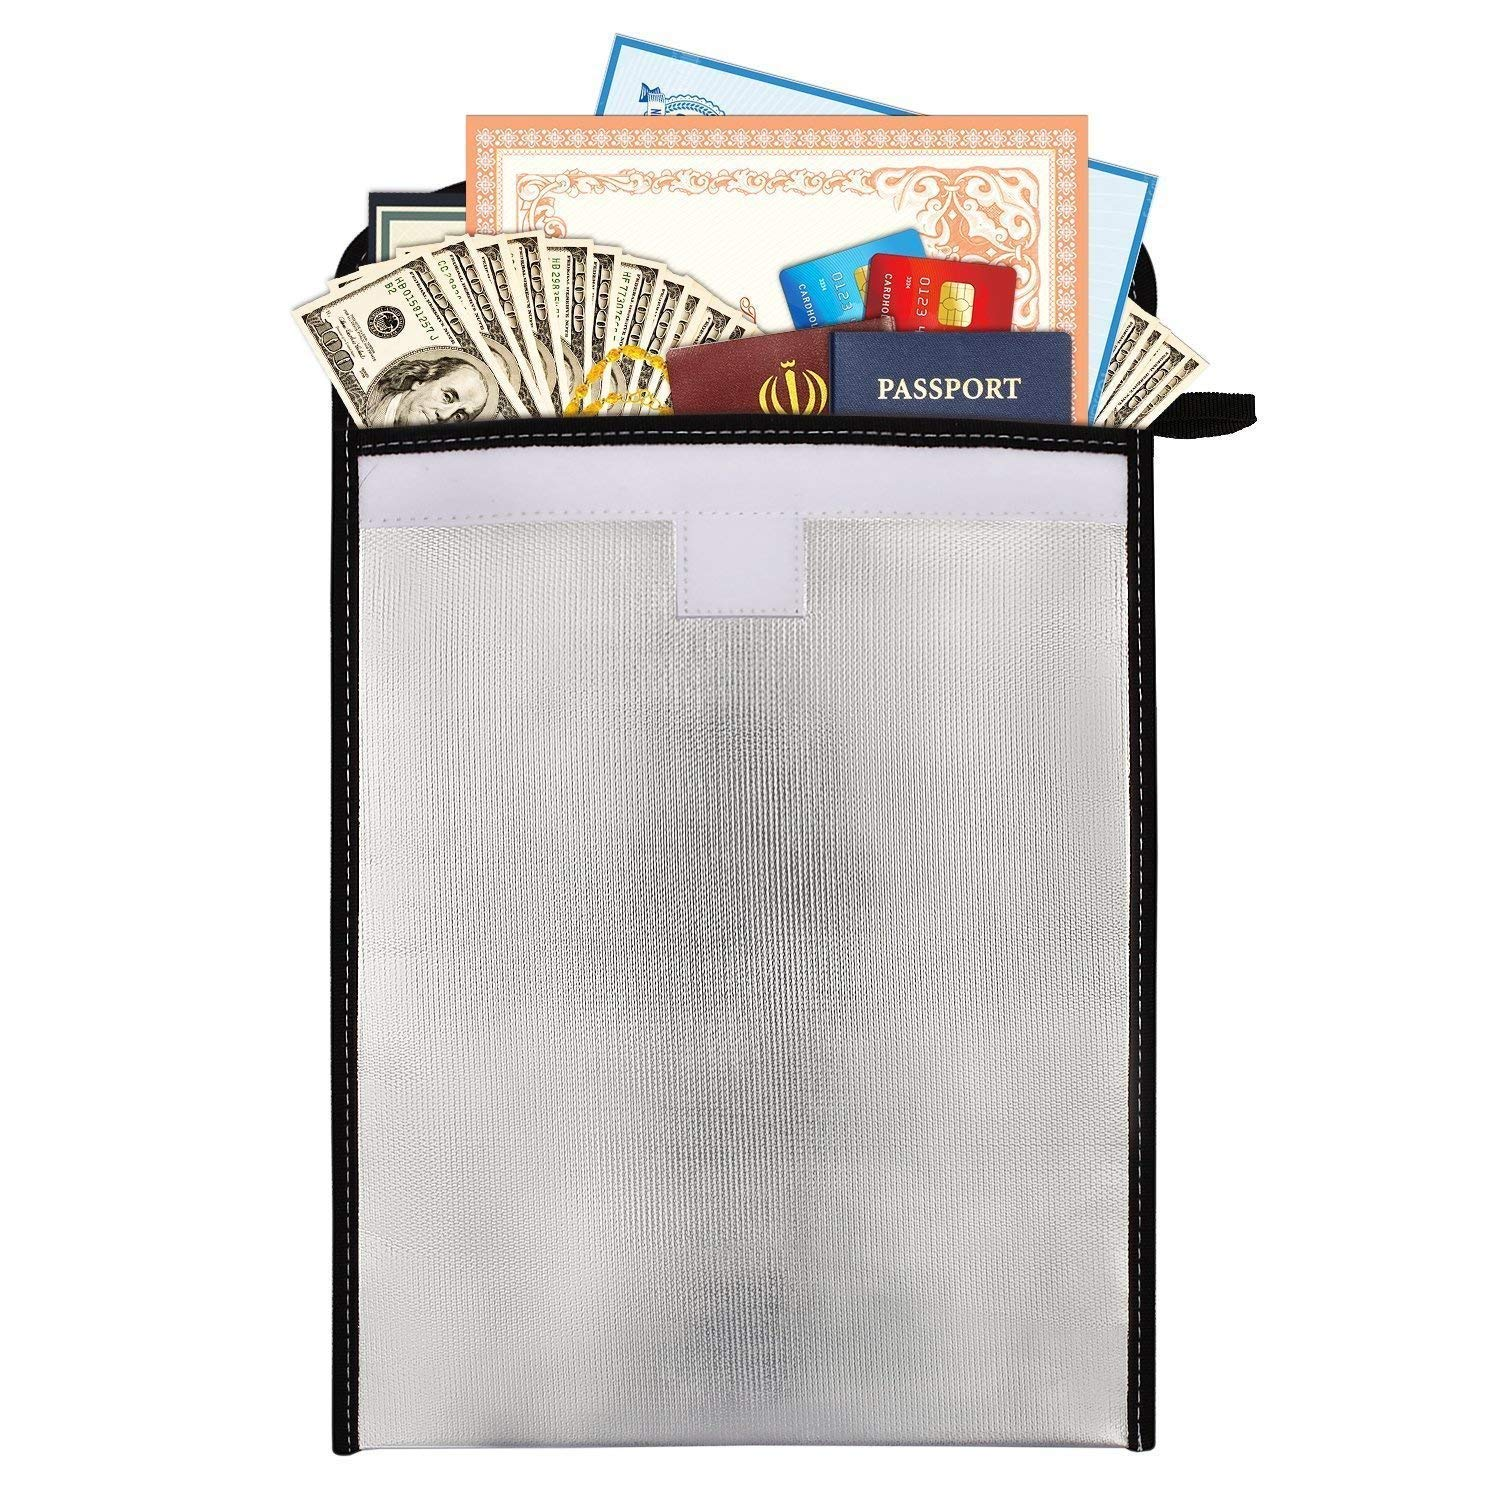 Fireproof Document & Money Bag, Fire & Water Resistant Large Cash & Envelope Holder, Waterproof Safe Storage for Money, Documents, Jewelry and Passport with Zipper Closure (15''x11'', Silver)